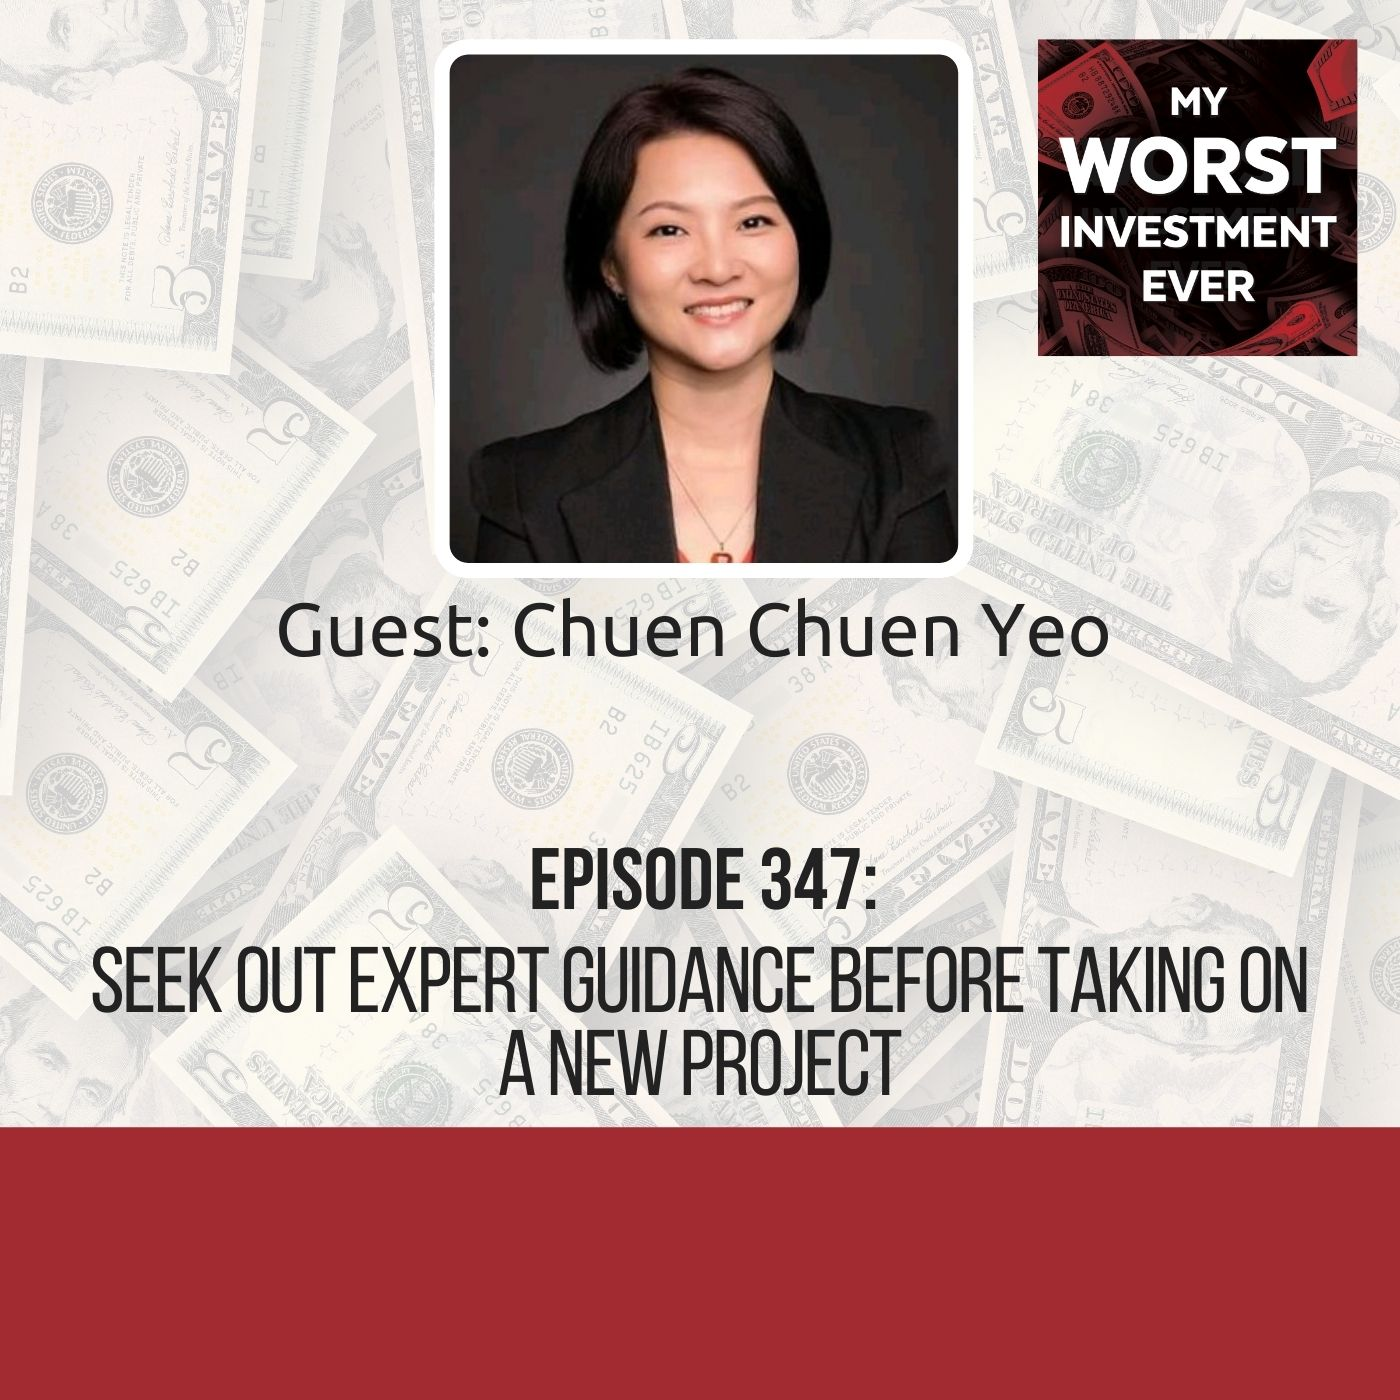 Chuen Chuen Yeo – Seek Out Expert Guidance Before Taking on a New Project